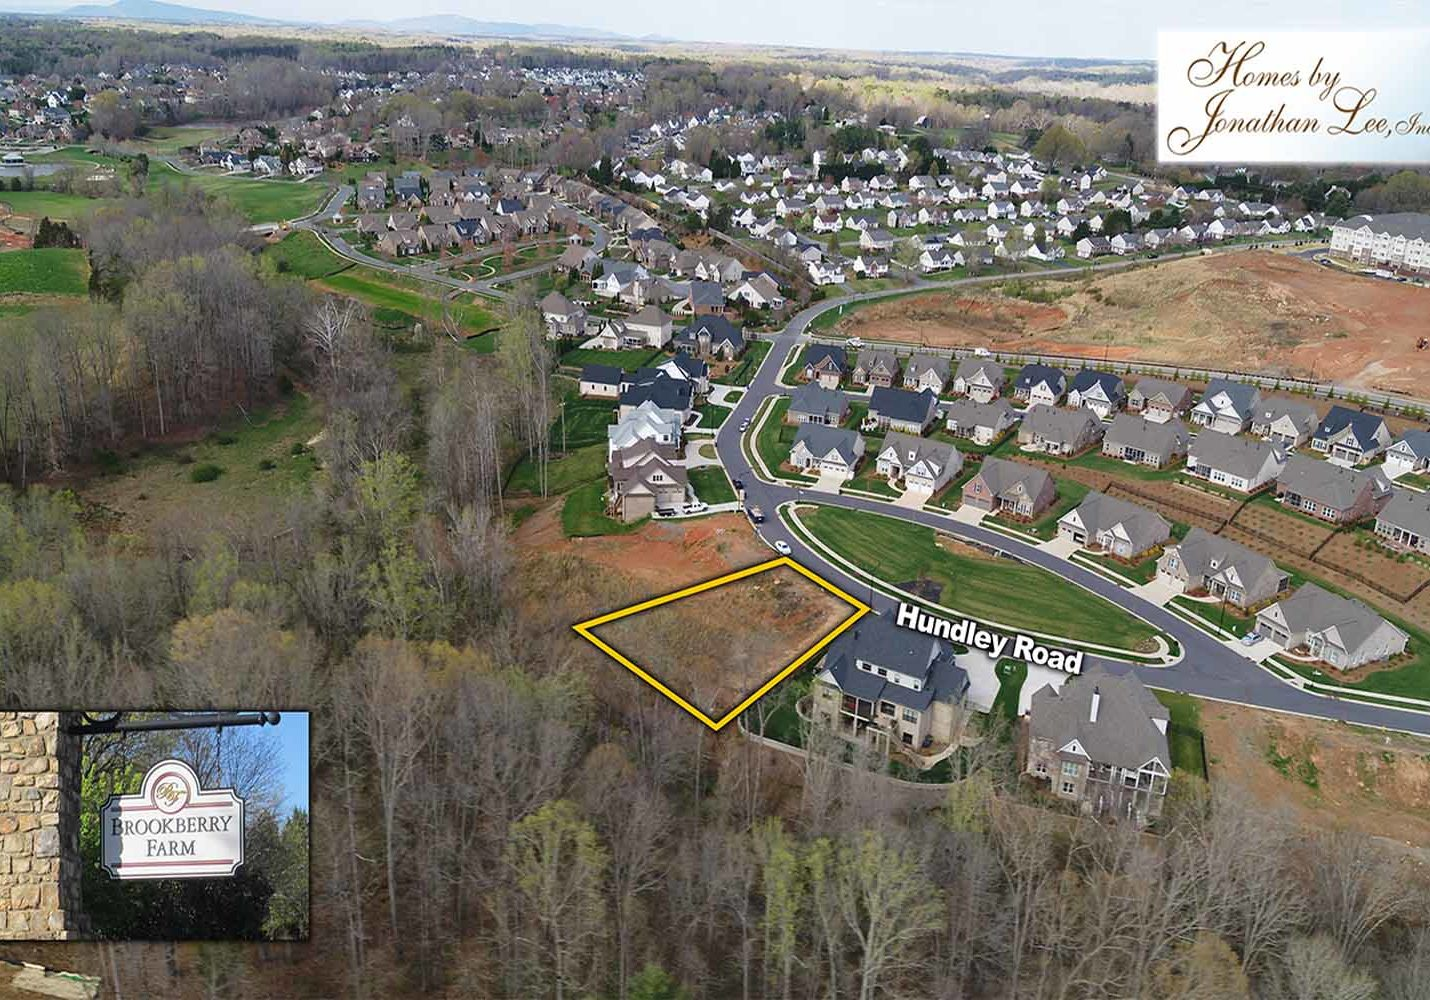 LOT - 5633 Hundley Road (Jonathan Lee)